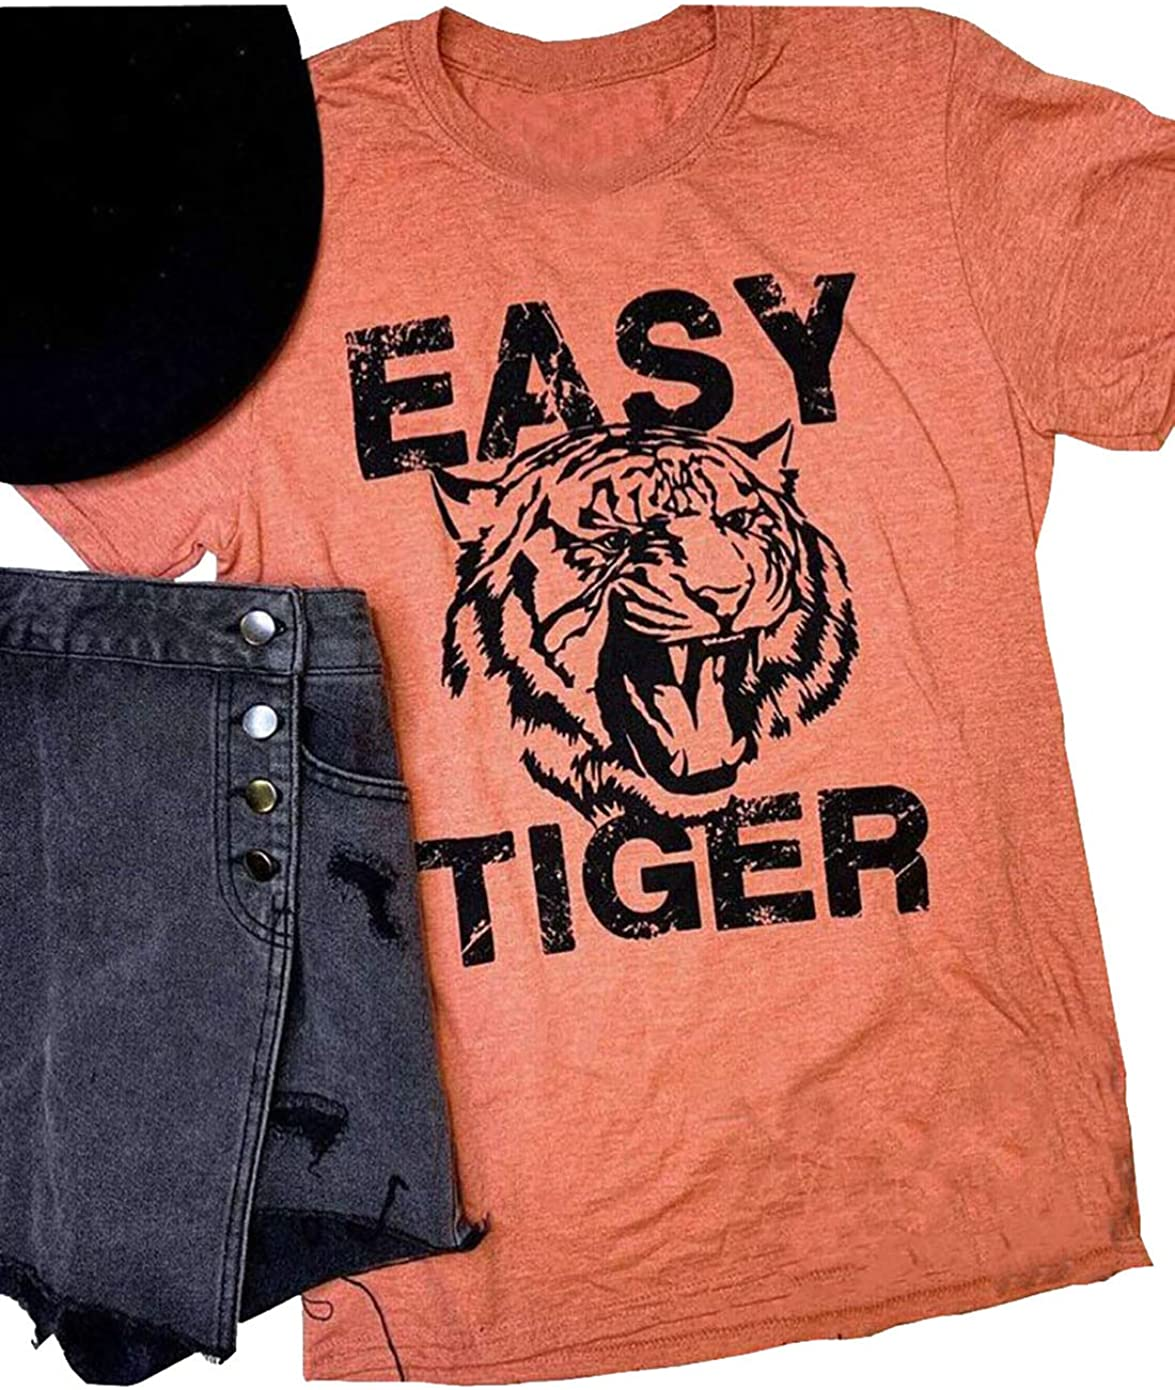 Women's Easy Tiger Printed Graphic T Shirt Fan Animal Lovers Vintage Shirt Summer Casual Short Sleeve Tops Tshirt